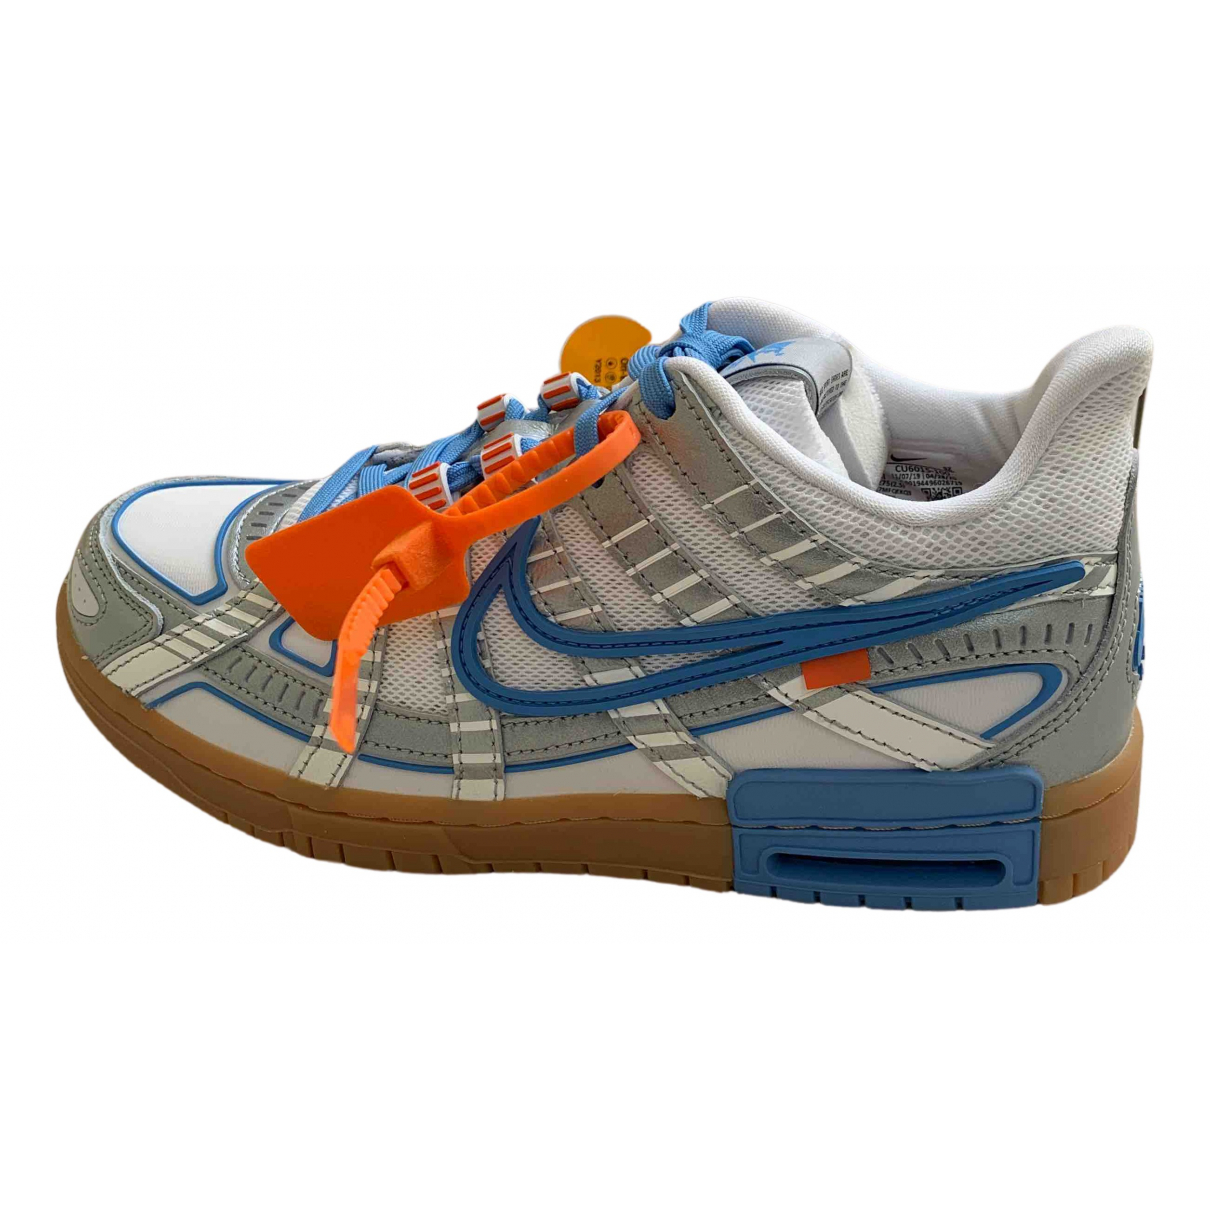 Nike X Off-white N Multicolour Leather Trainers for Men 8.5 UK